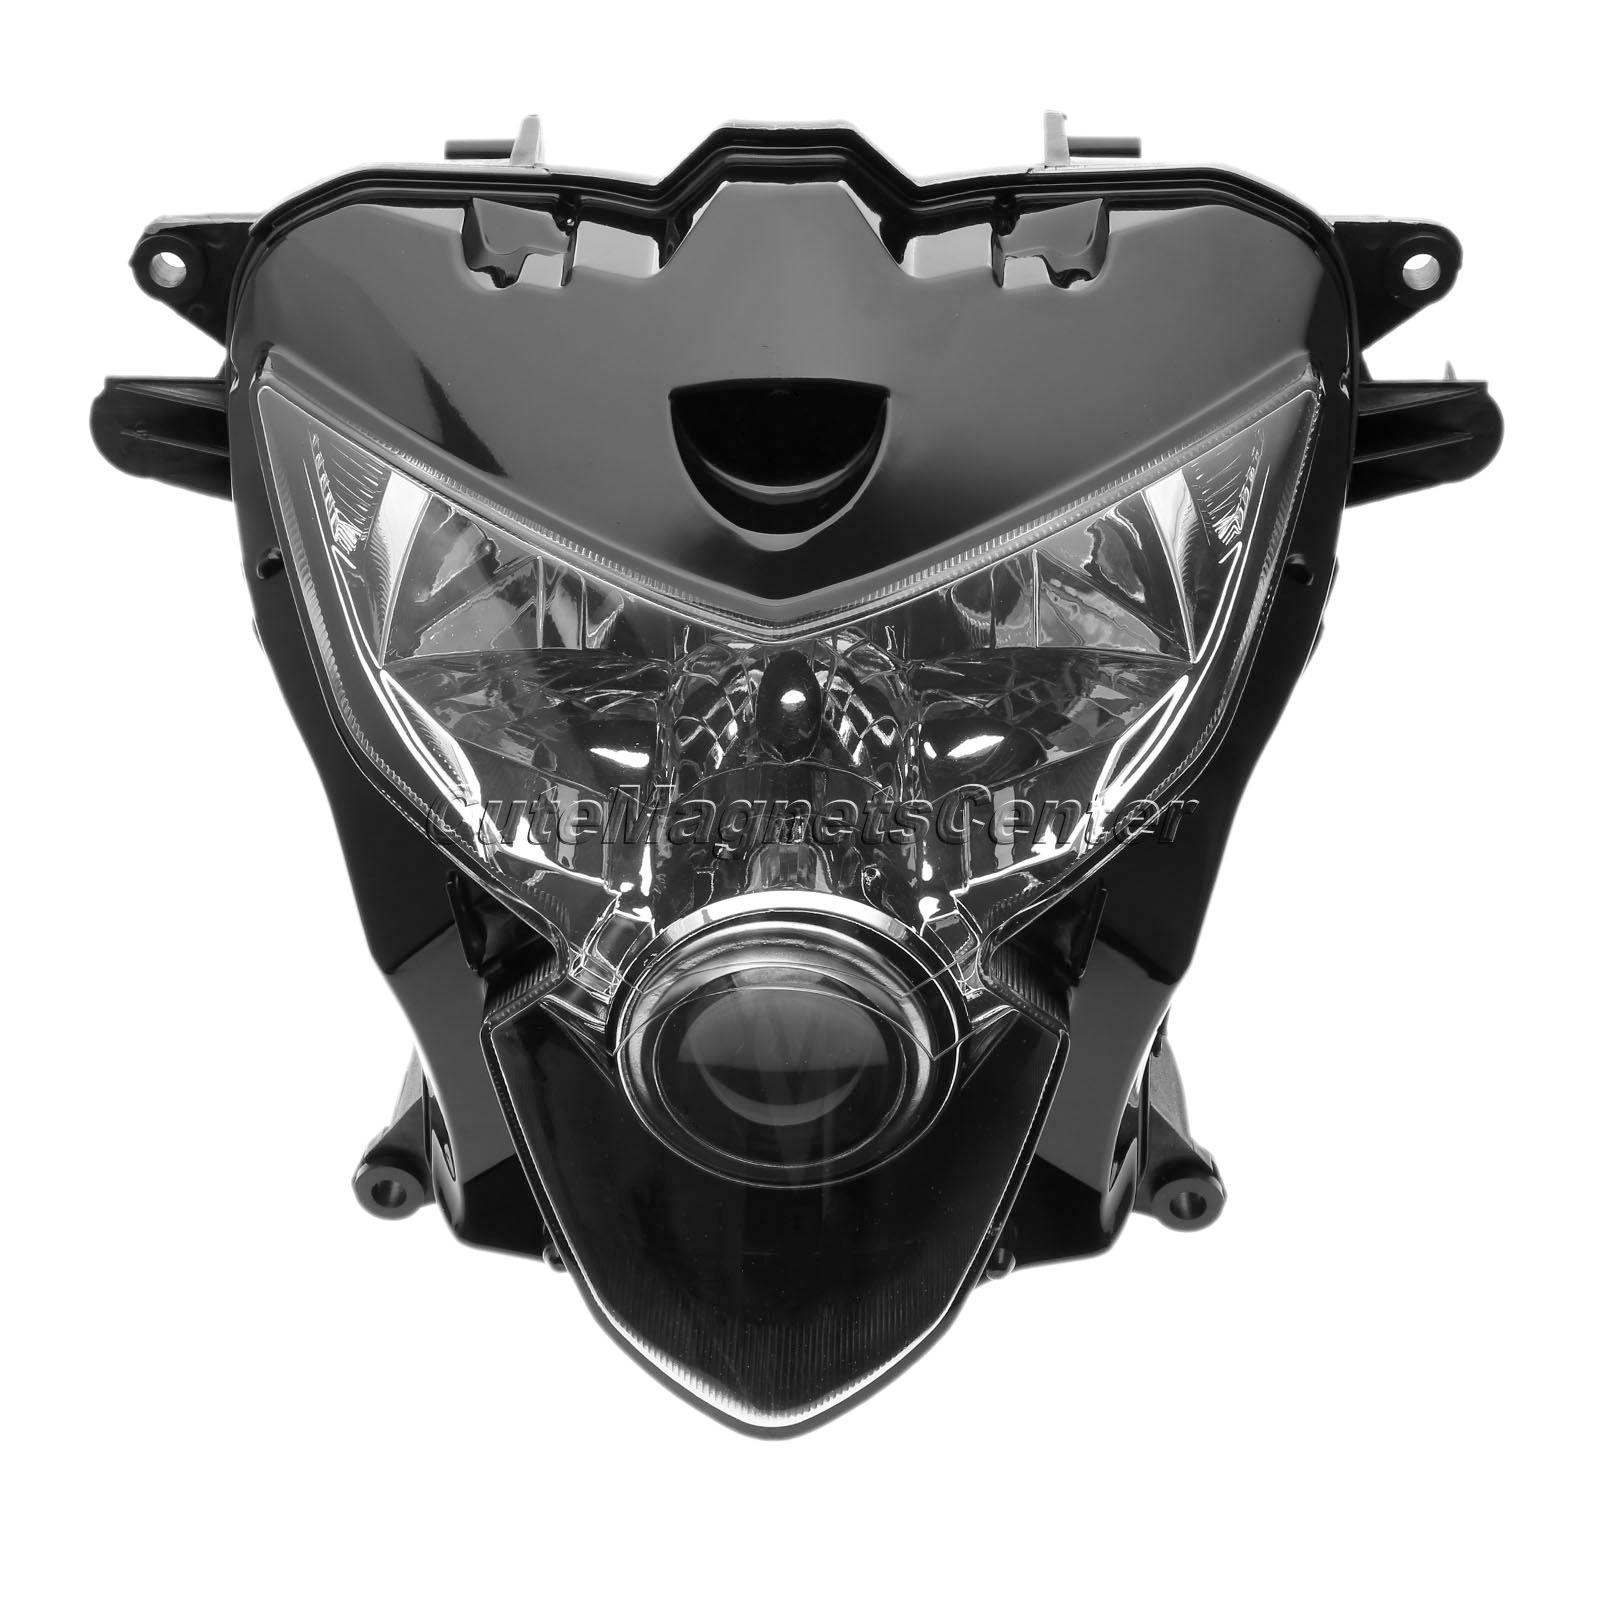 1X ABS Motorbike Headlamp Lighting Motorcycle Headlights Head font b Light b font Lamp Assembly For